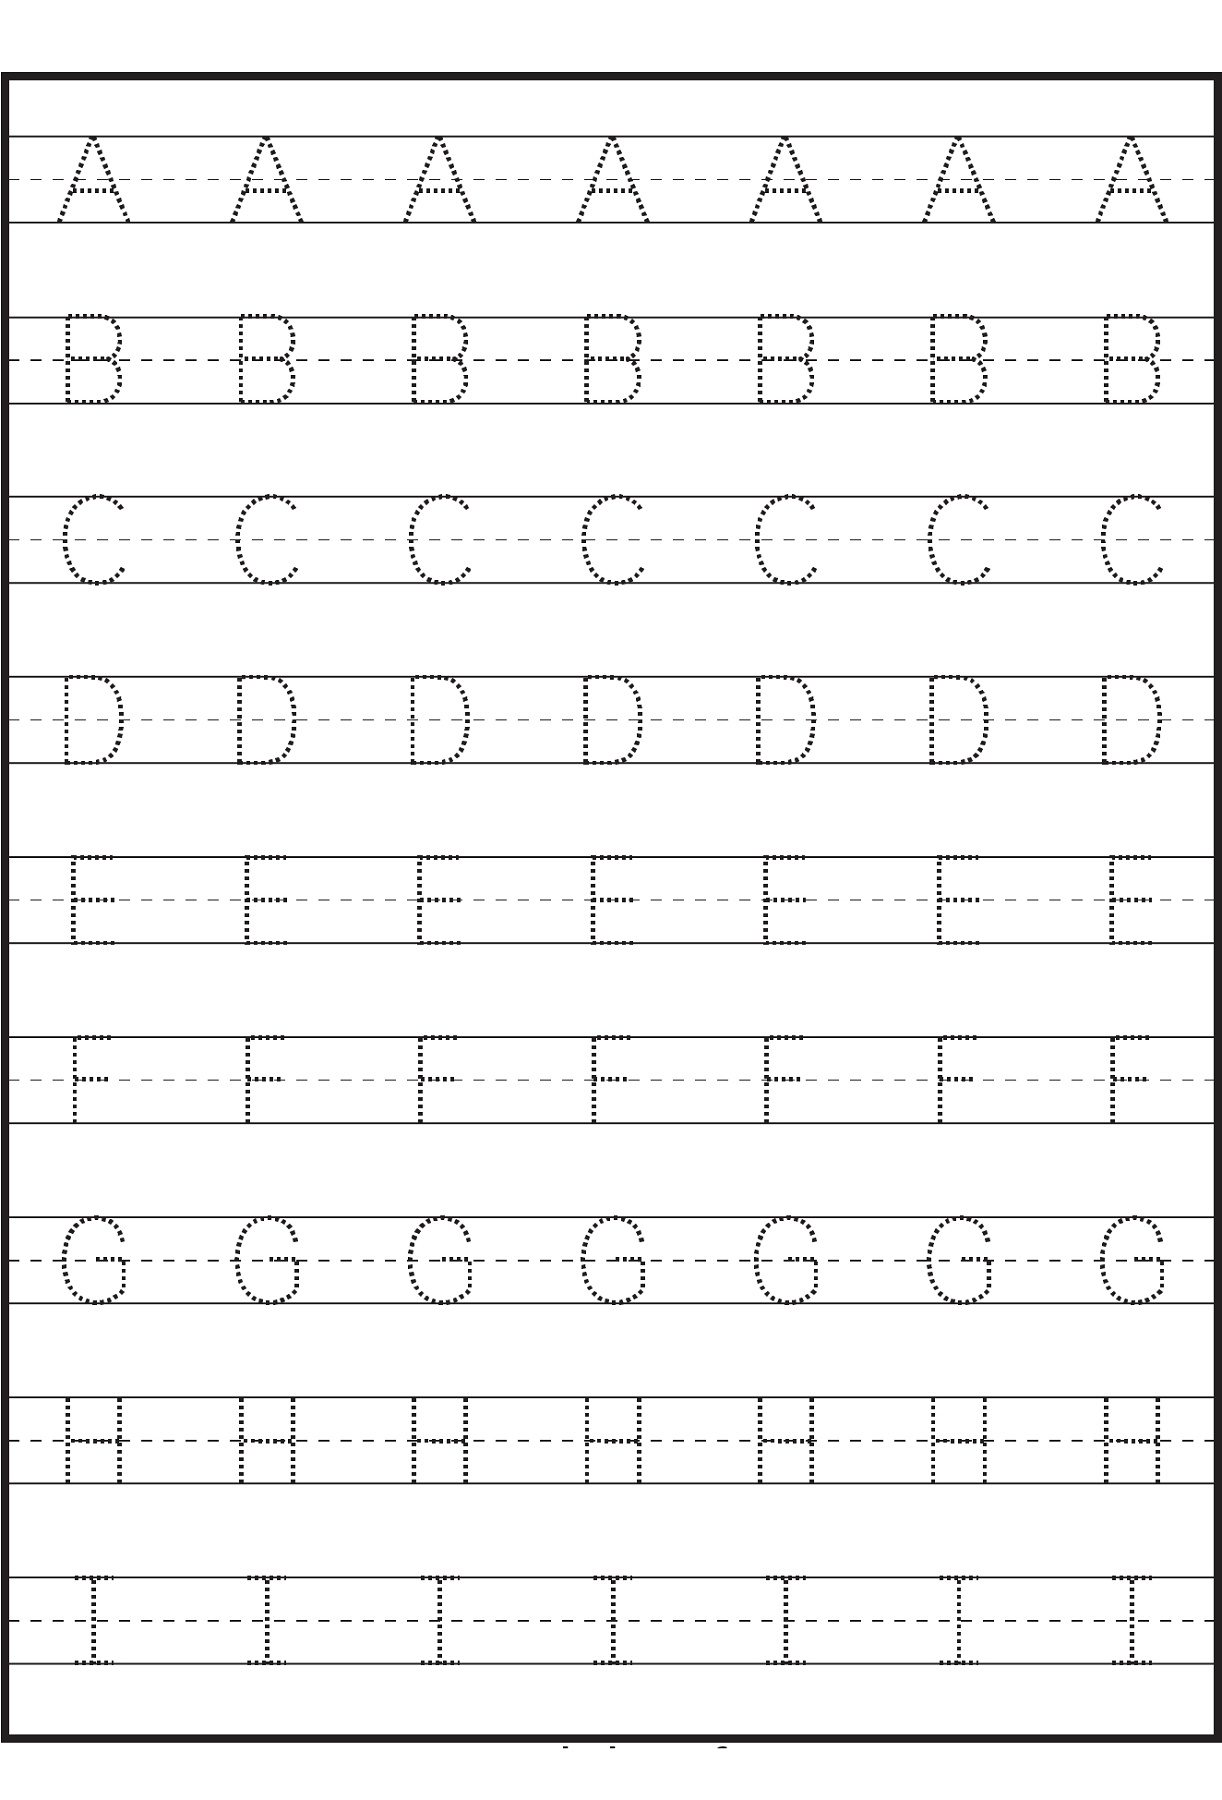 Letter Tracing Sheets Printable | Letter Tracing Worksheets with regard to Alphabet Tracing Sheets Printable